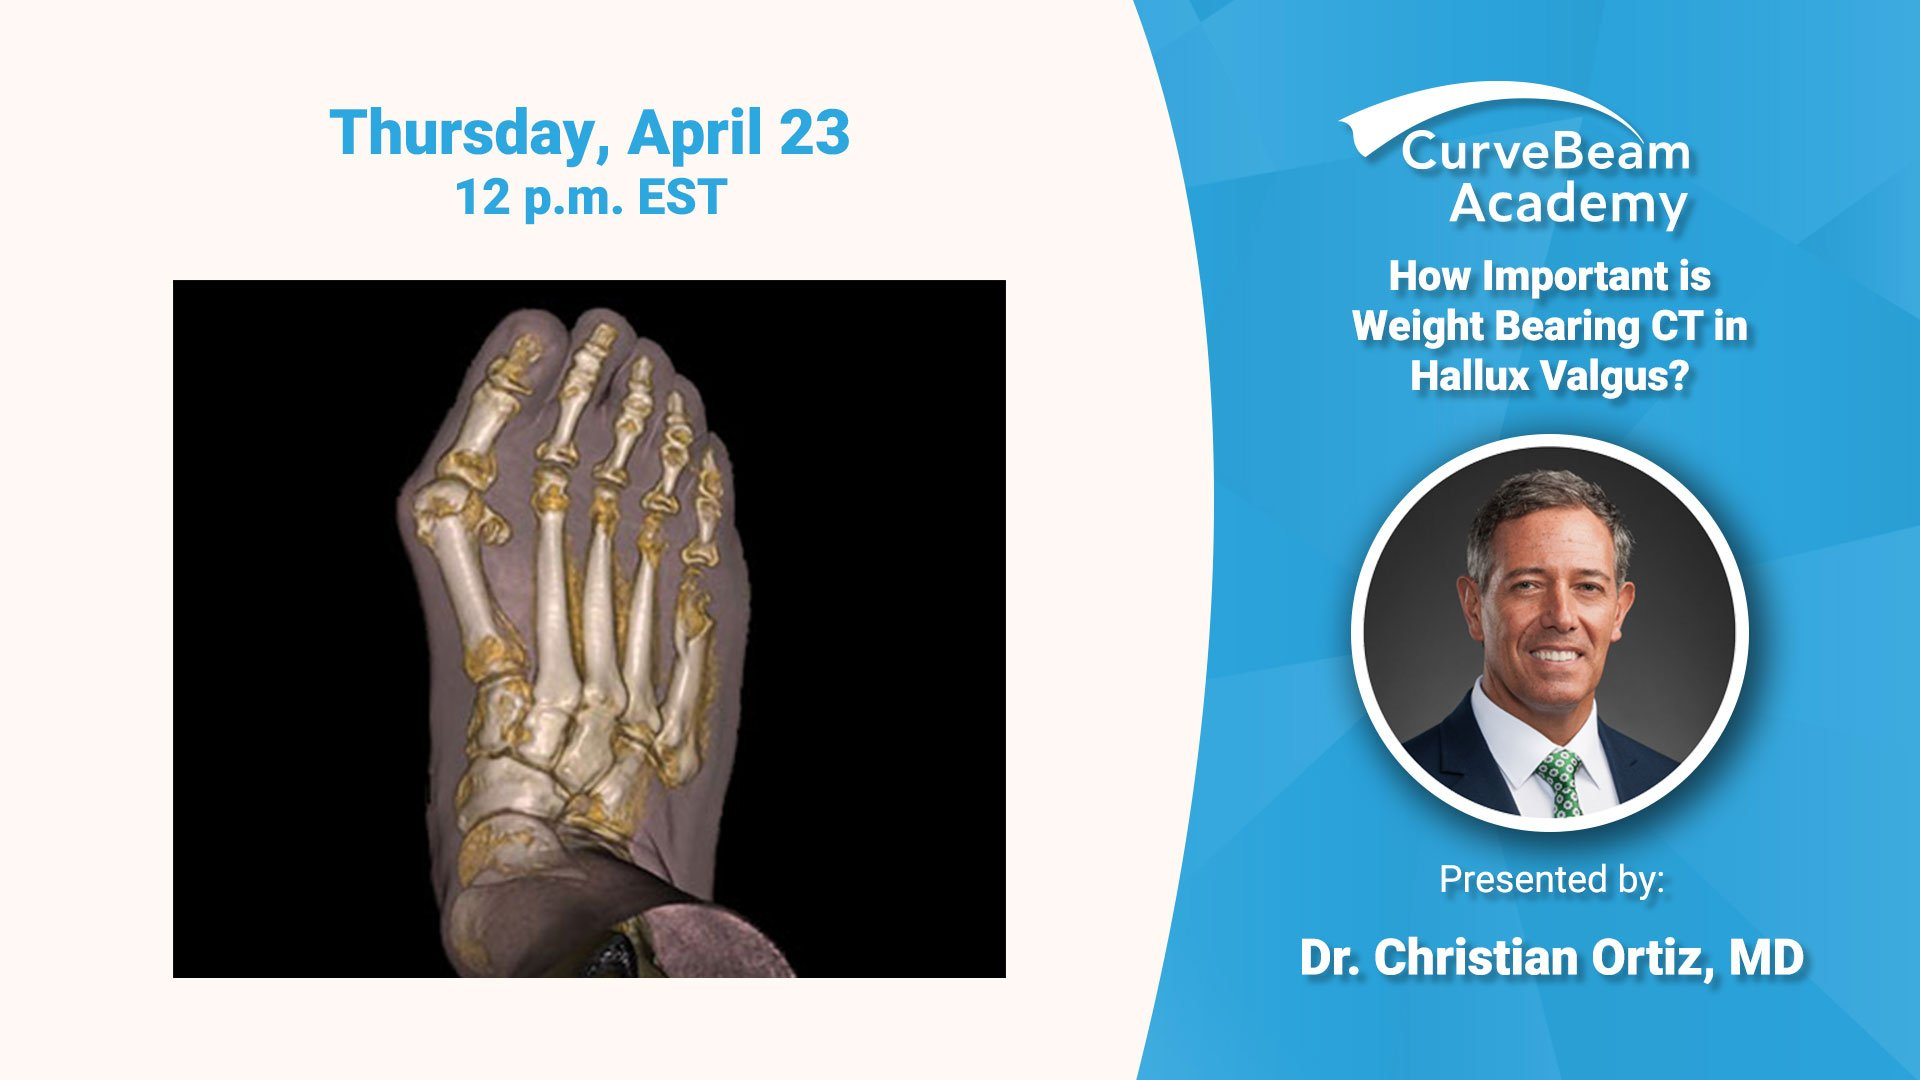 Webinar: How Important Is Weight Bearing CT In Hallux Valgus?